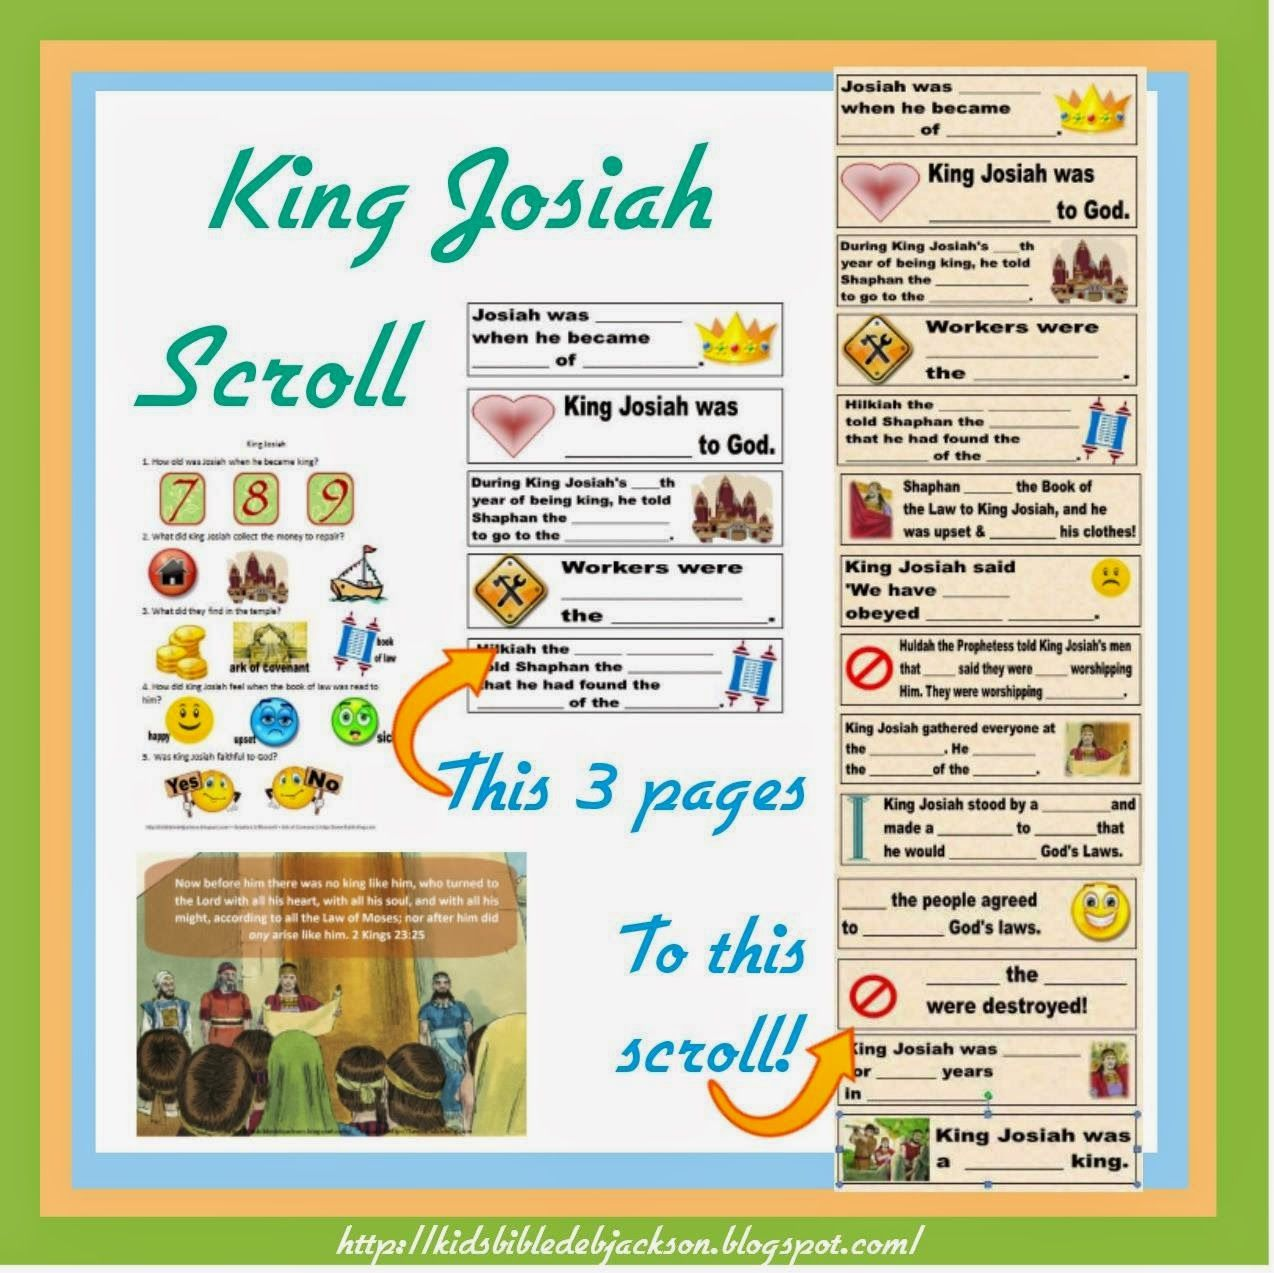 Bible lesson josiah finds the law of the lord - Bible Fun For Kids King Josiah Also Has Many Other Bible Lessons Good Resource For Children S Ministry As Well